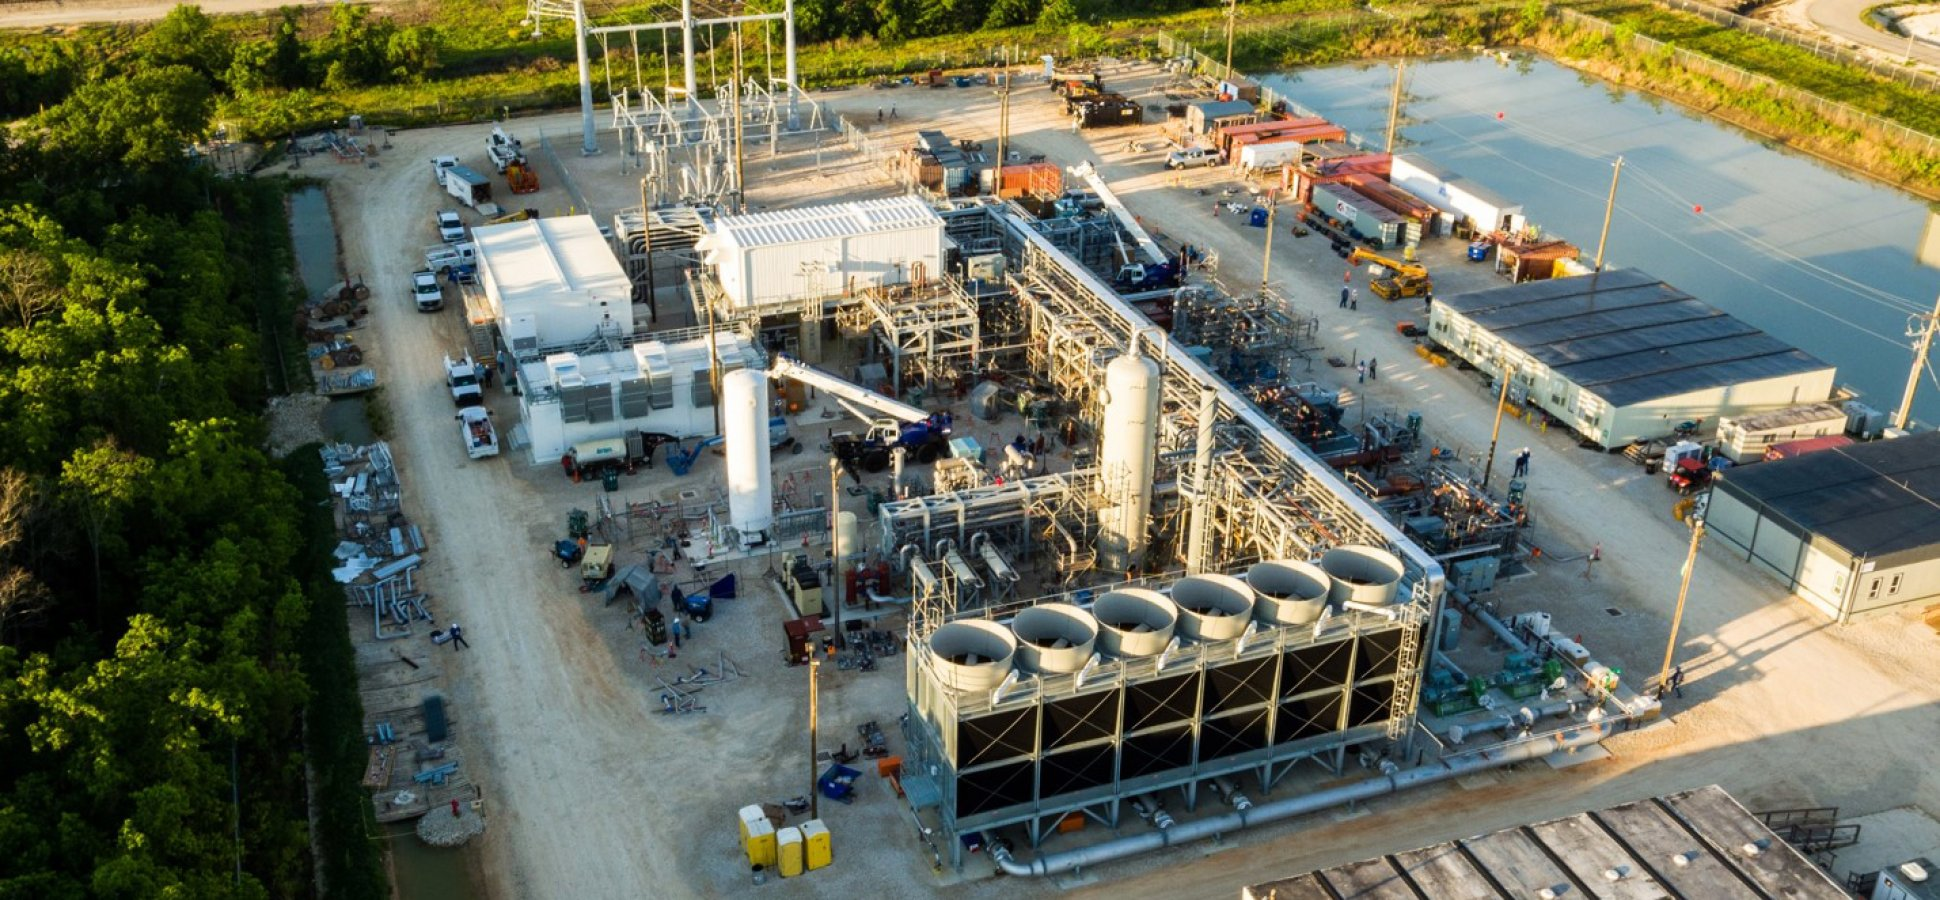 Net Power's $150 Million Power Plant Was Just Built in Texas. Humanity Should Pray It Succeeds